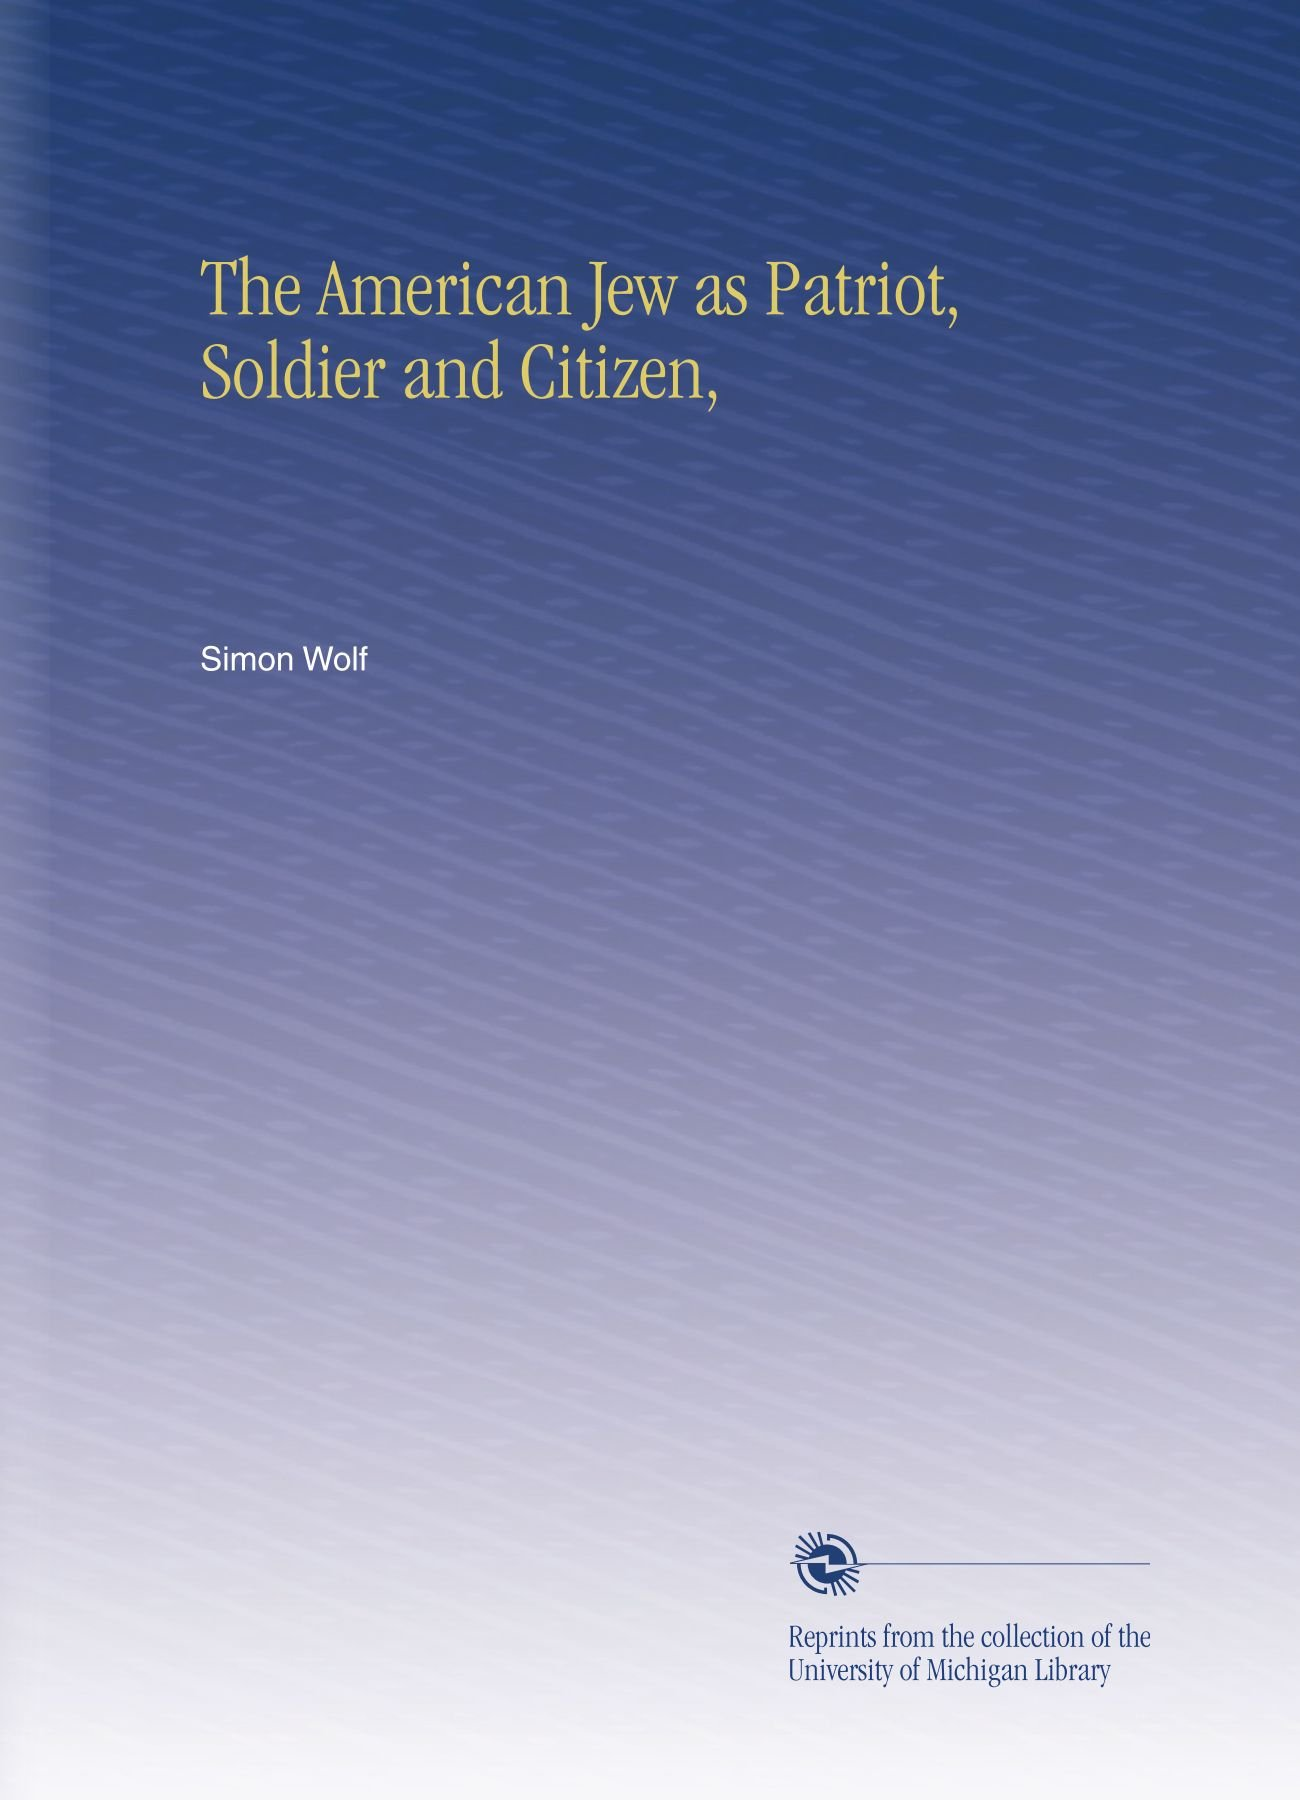 Download The American Jew as Patriot, Soldier and Citizen, PDF